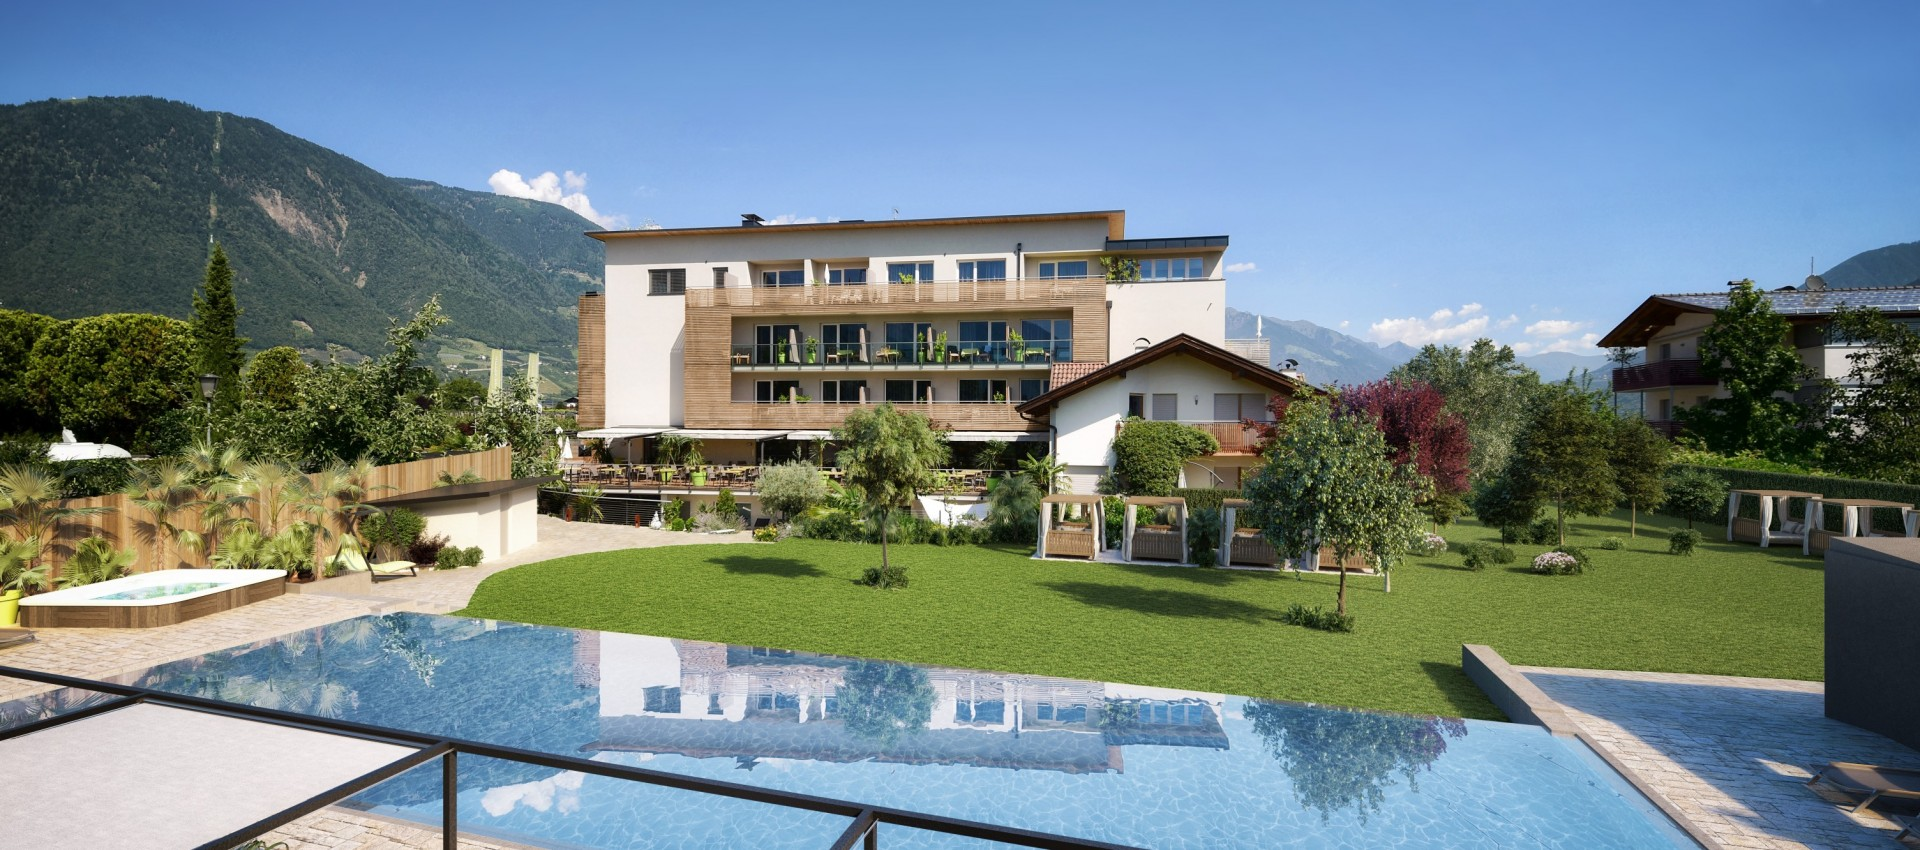 Rendering Schwimmbad 2017 Homepage - Hotel Lana - Pfeiss 4 Sterne